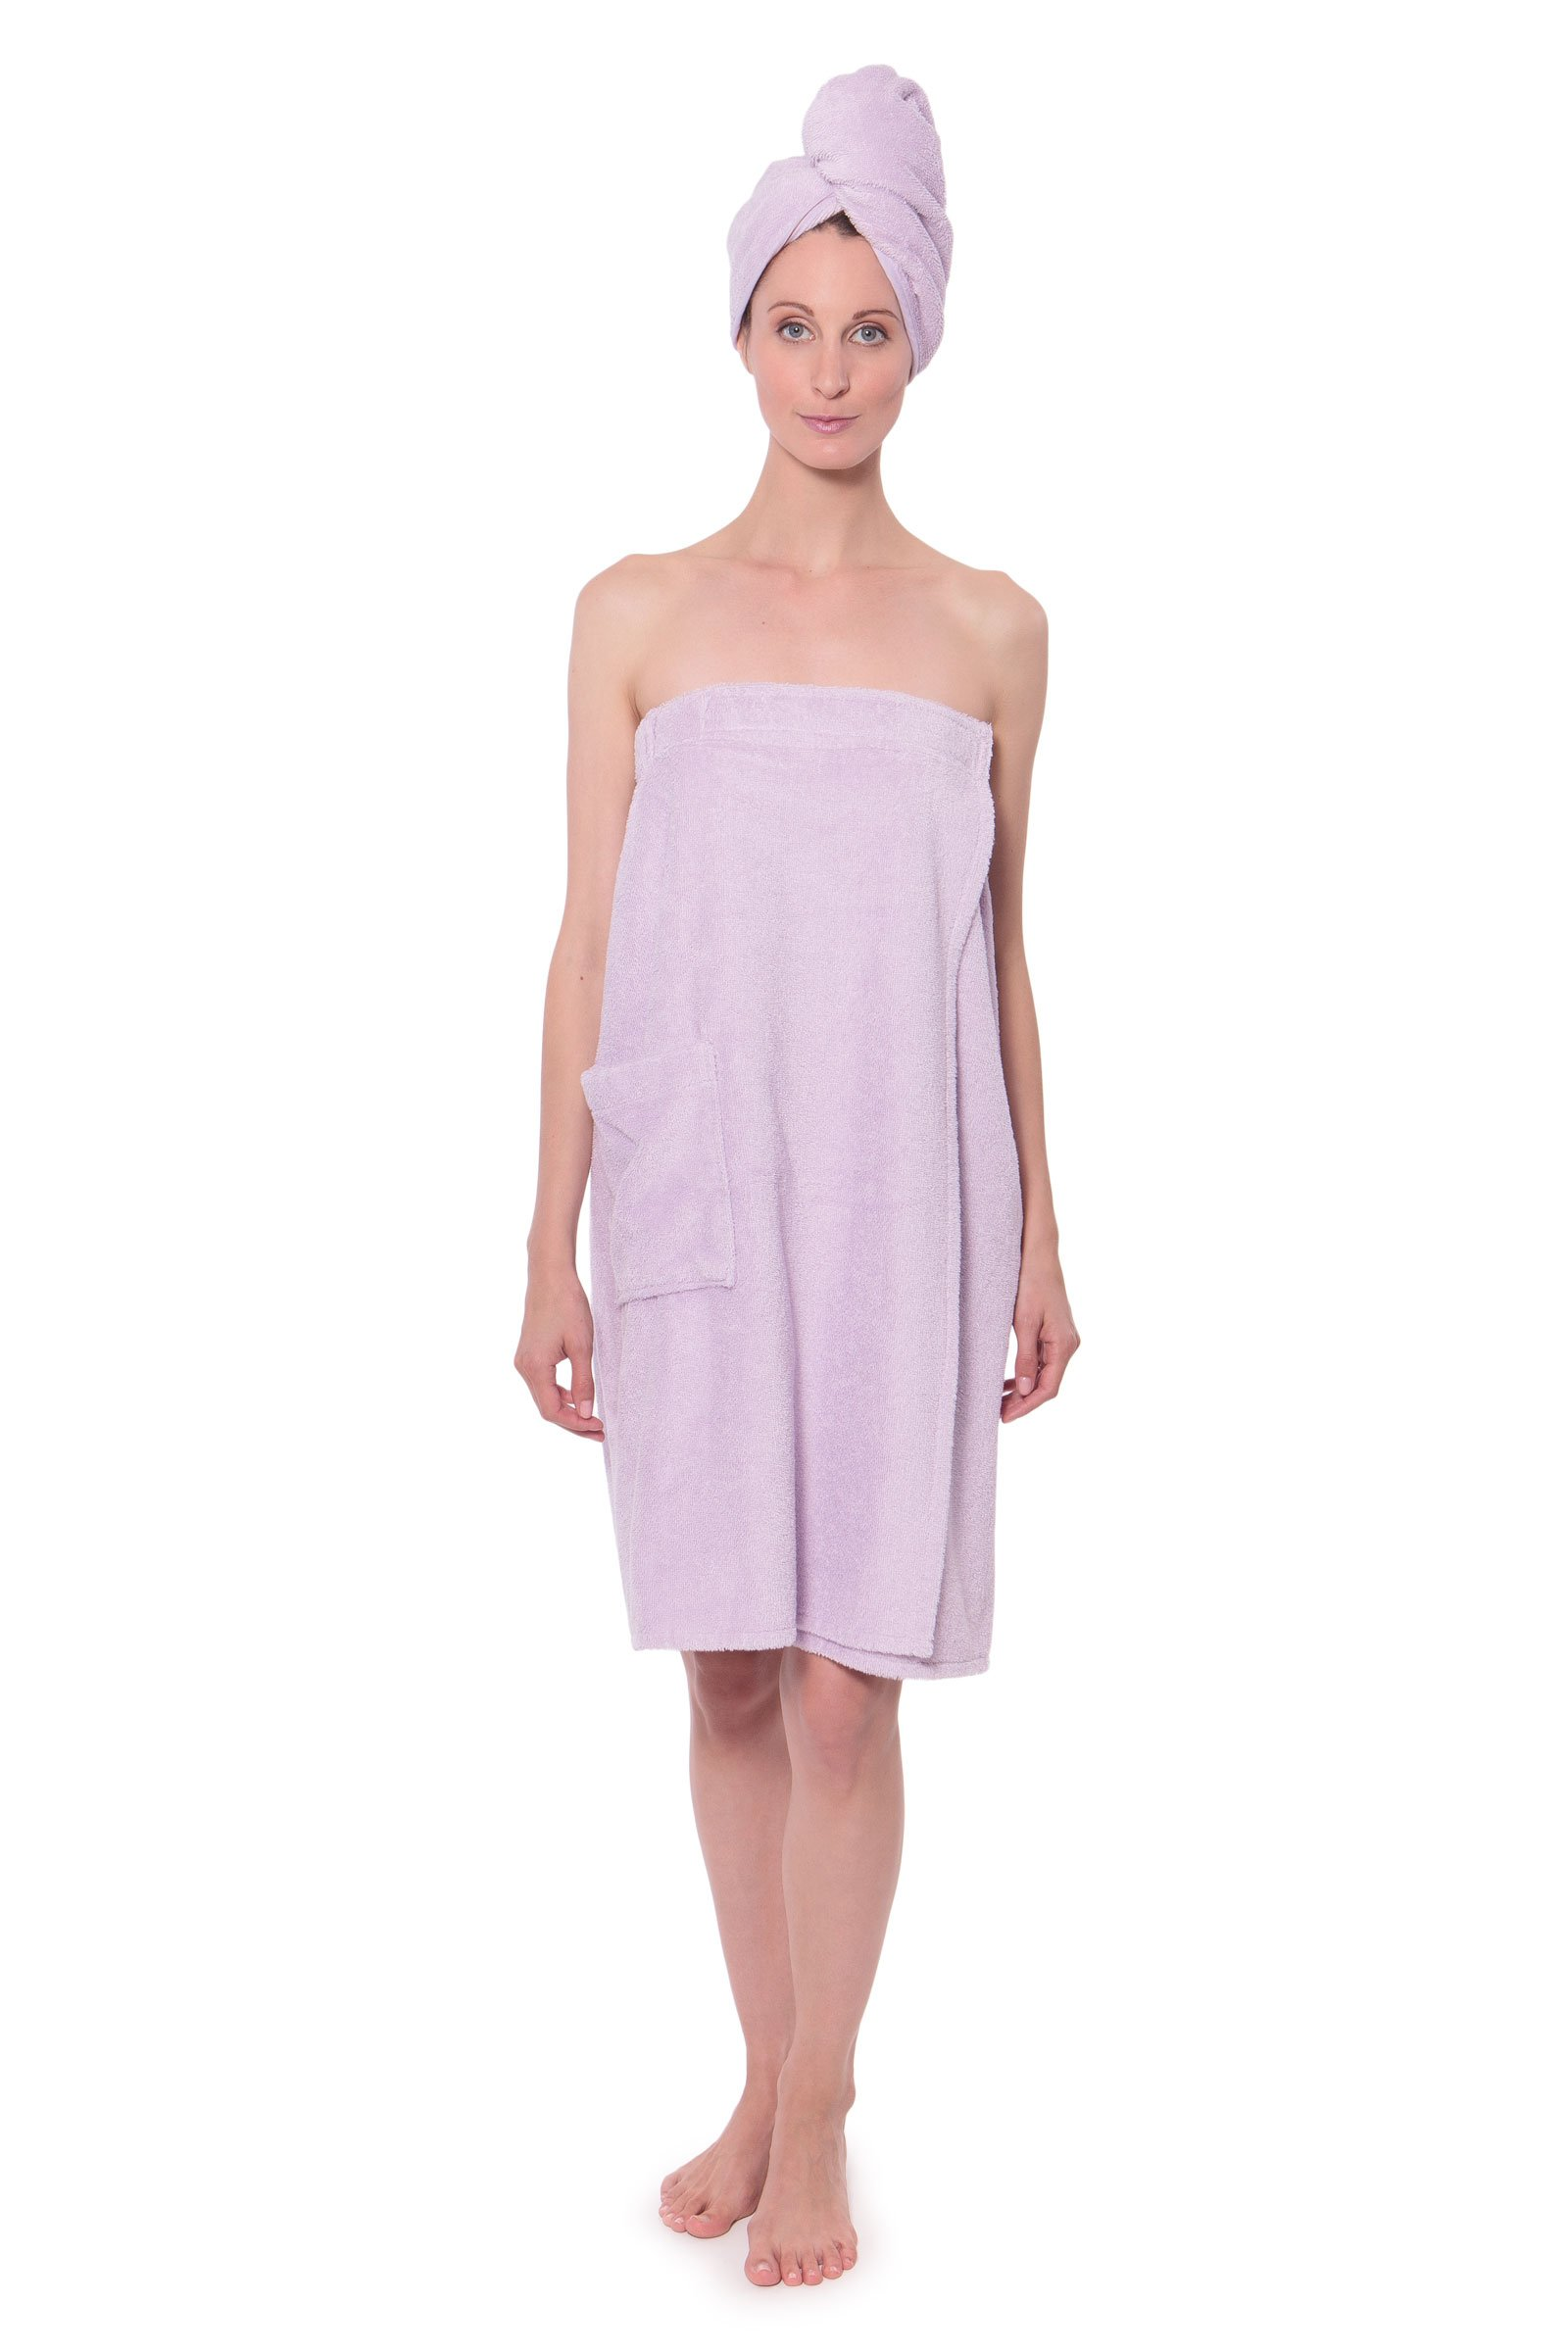 Women's Towel Wrap - Bamboo Viscose Spa Wrap Set by Texere (The Waterfall, Lavender Fog, Large/X-Large) Sweet Gift for Valentine WB0103-LVF-LXL